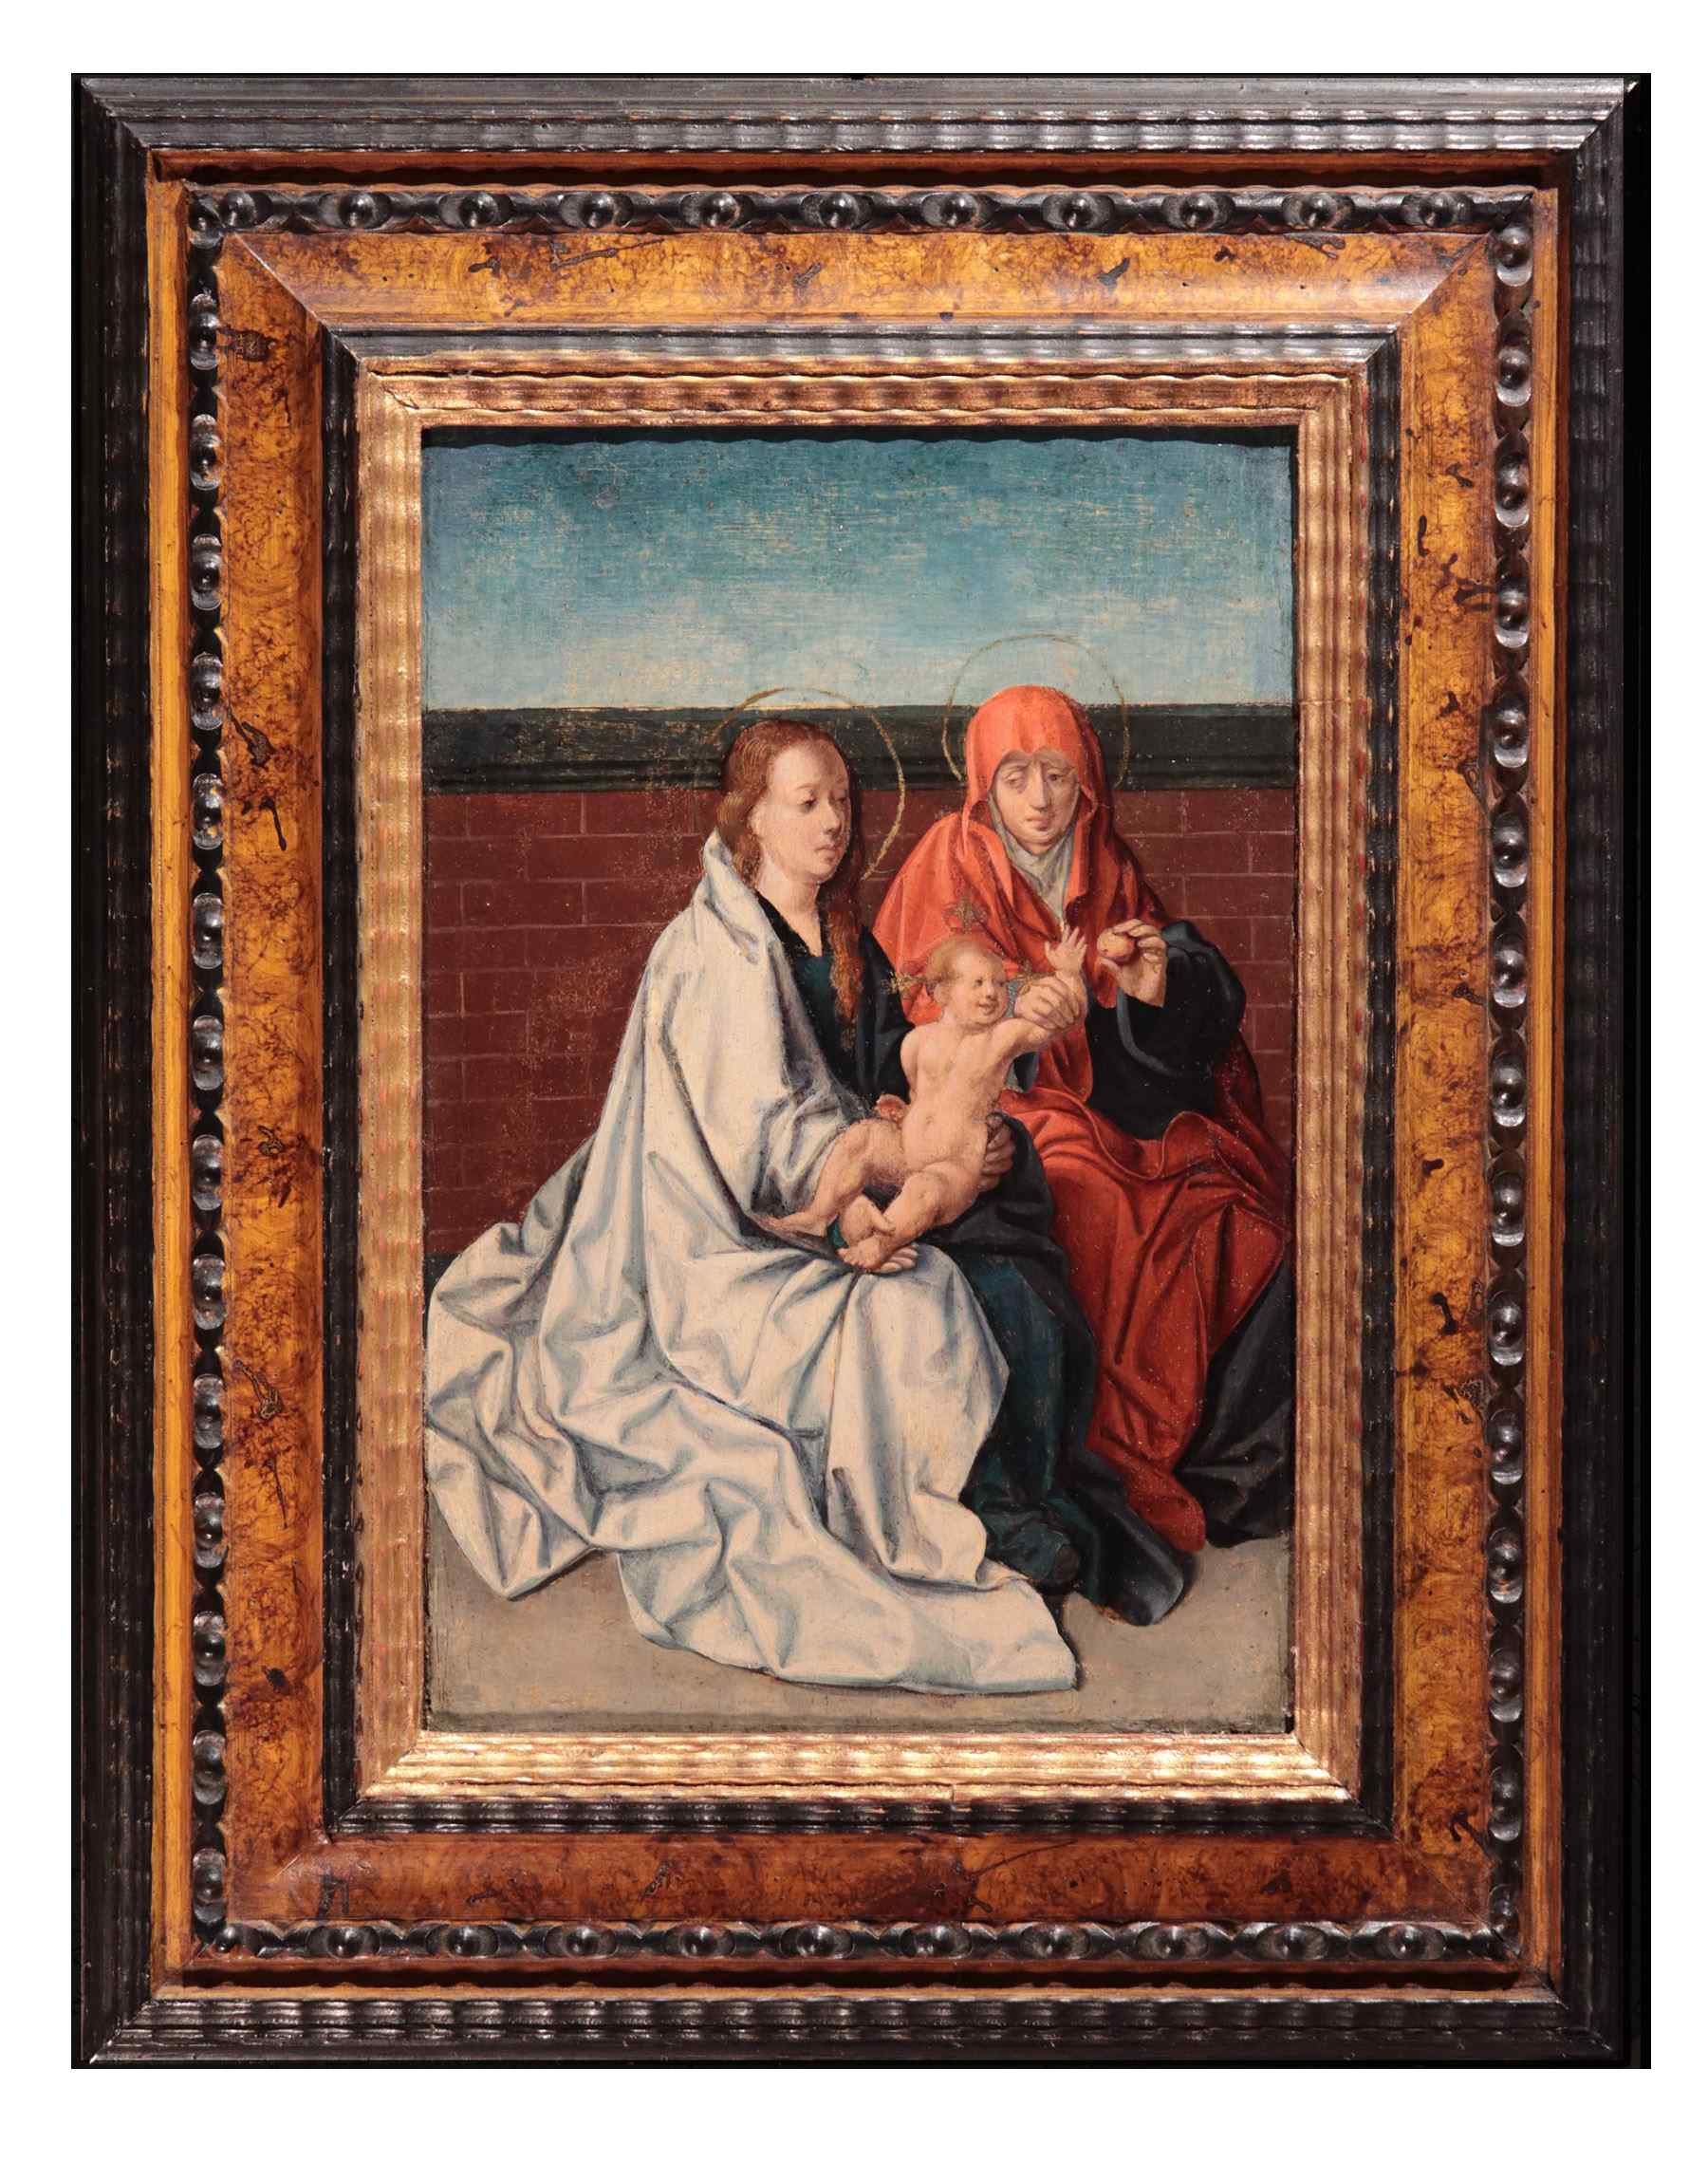 Virgin with Child and St. Anne, Flemish master, c. 1520